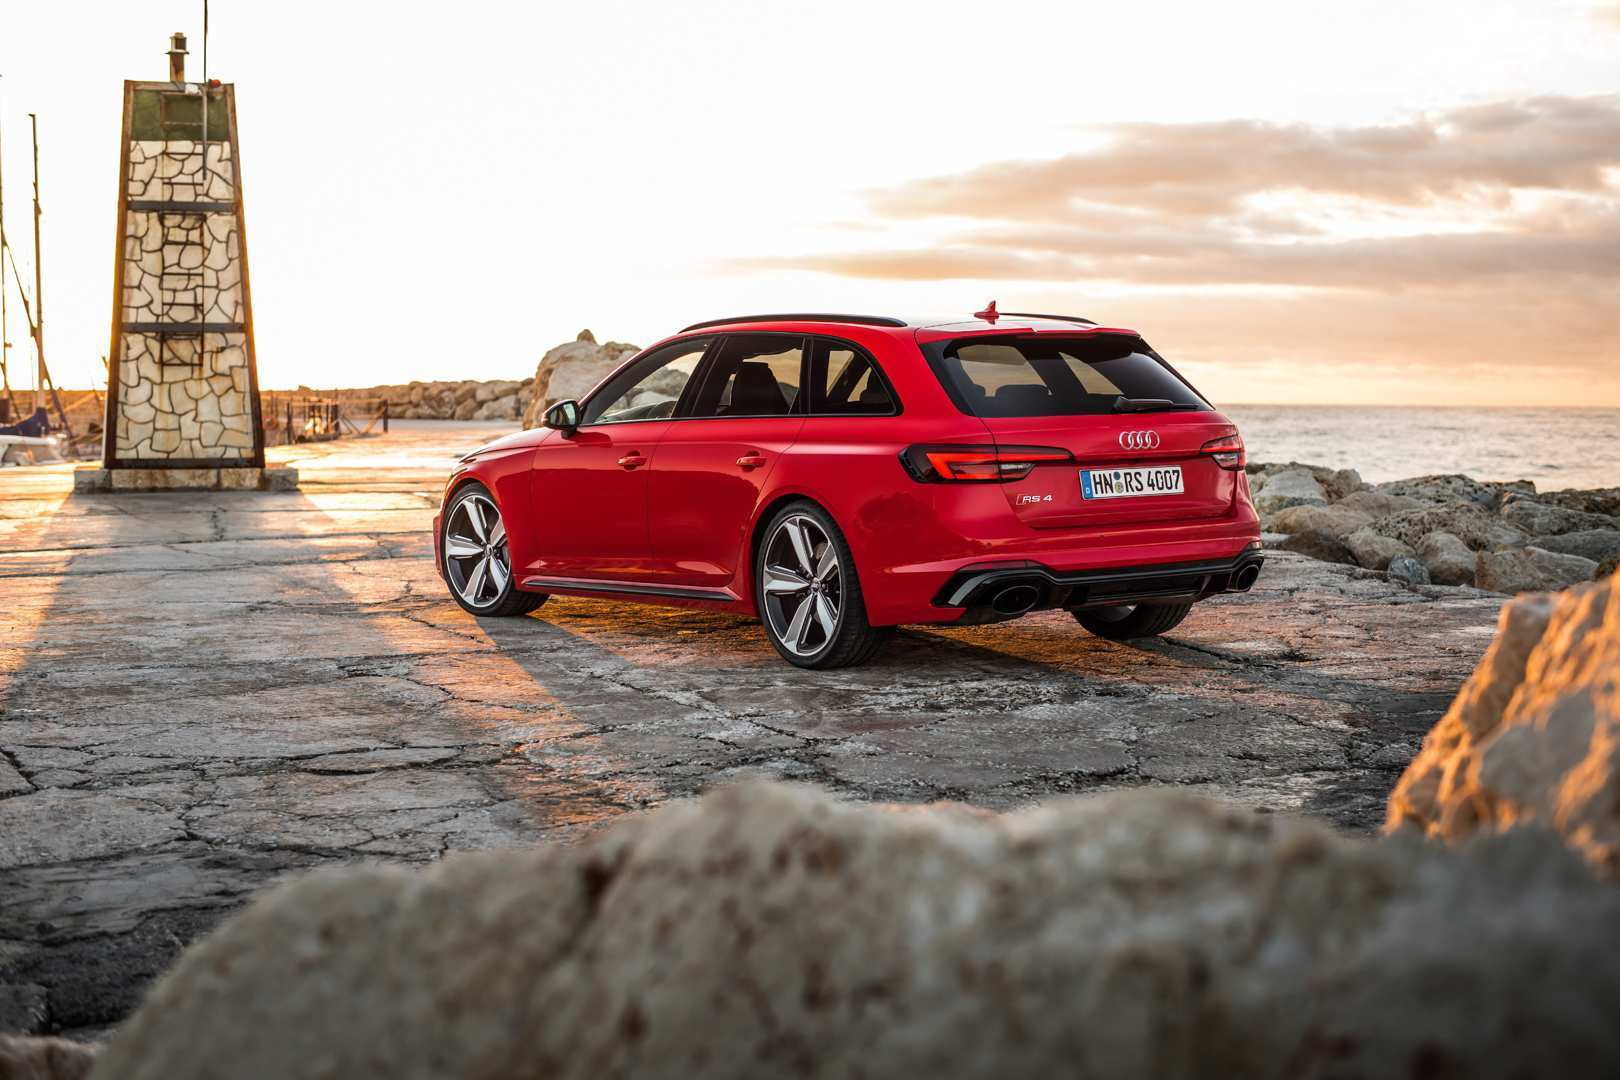 71 The Best 2020 Audi Rs4 New Review